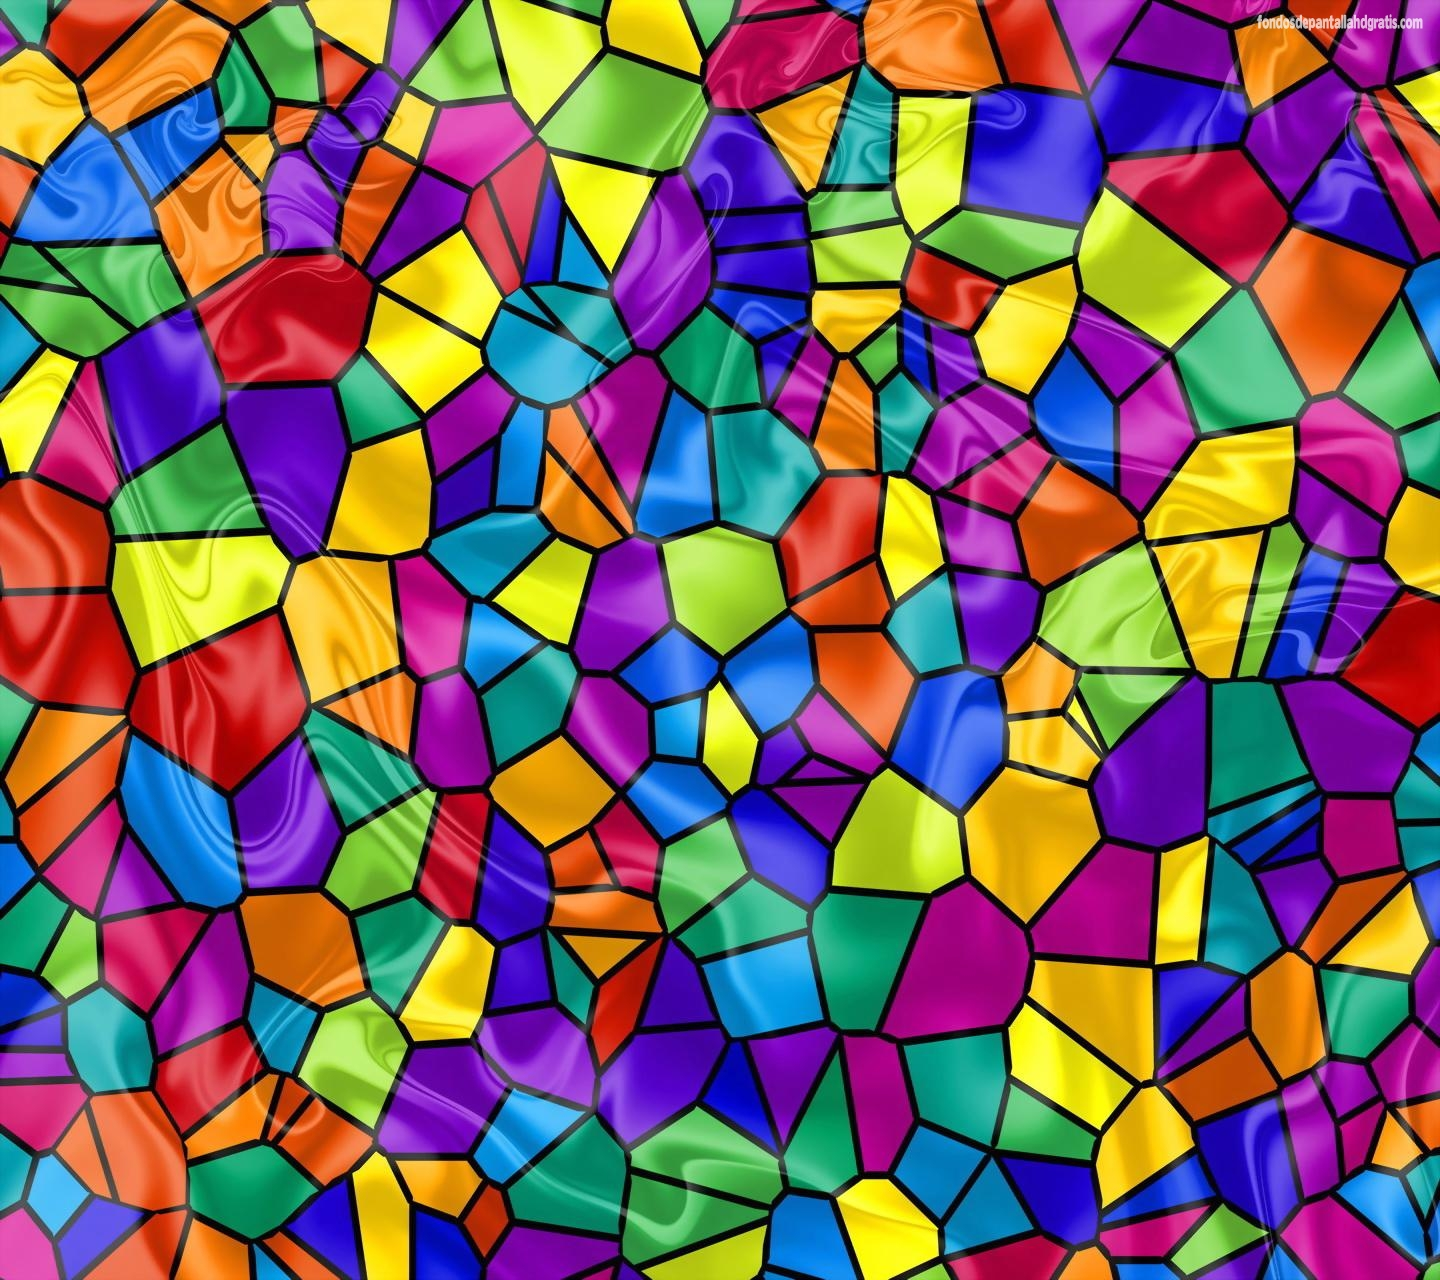 Space Galaxy 3d Live Wallpaper For Android Download Stained Glass Wallpaper Gallery